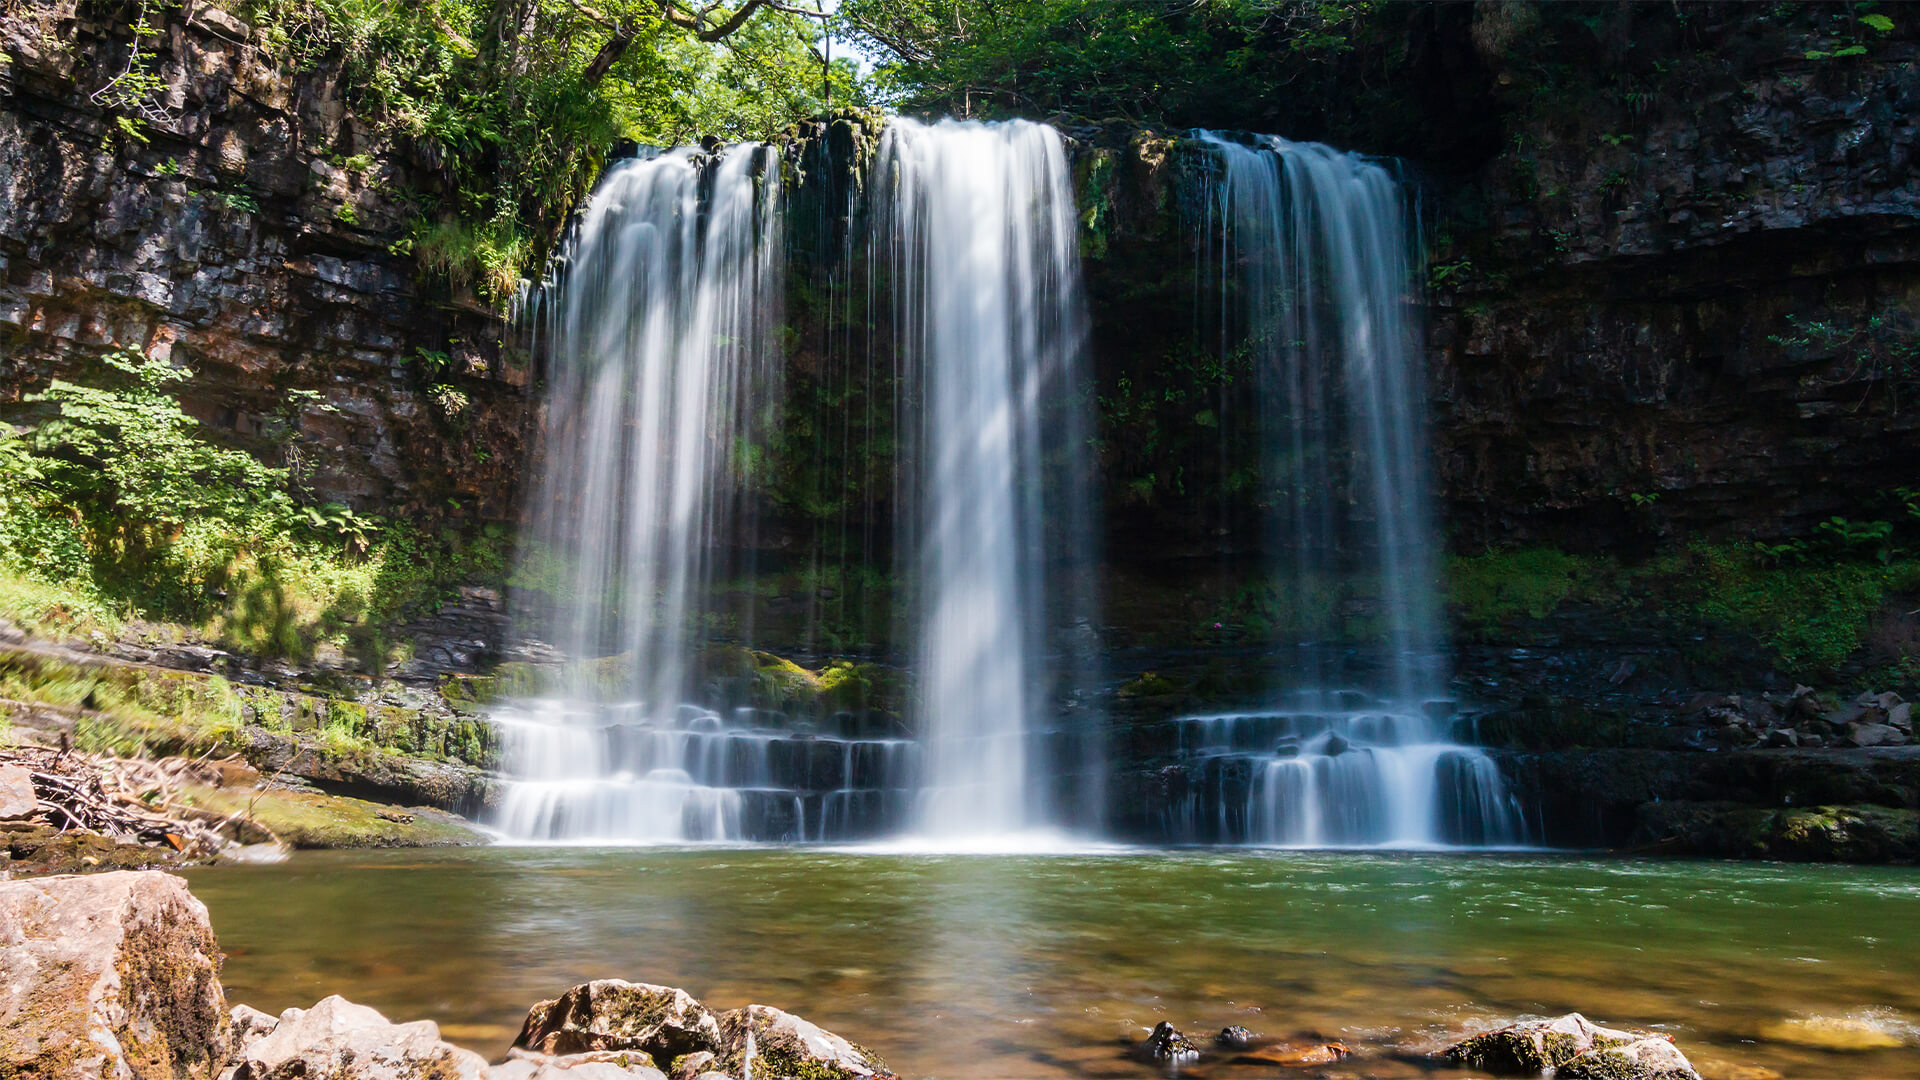 Sgwd Yr Eira Waterfall in Brecon Beacons national park, Wales